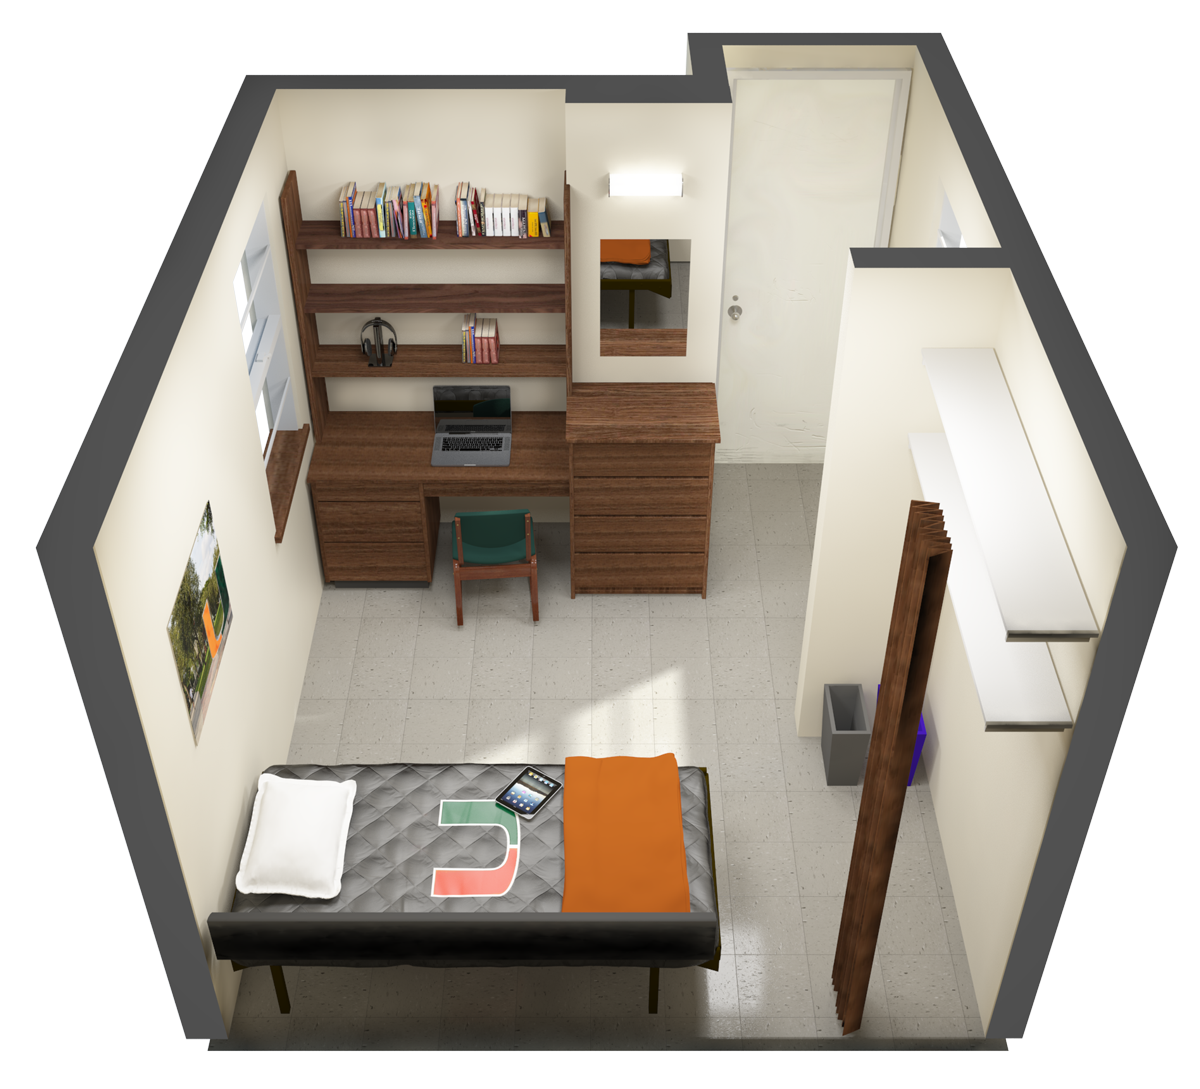 dorm png transparent dormpng images pluspng